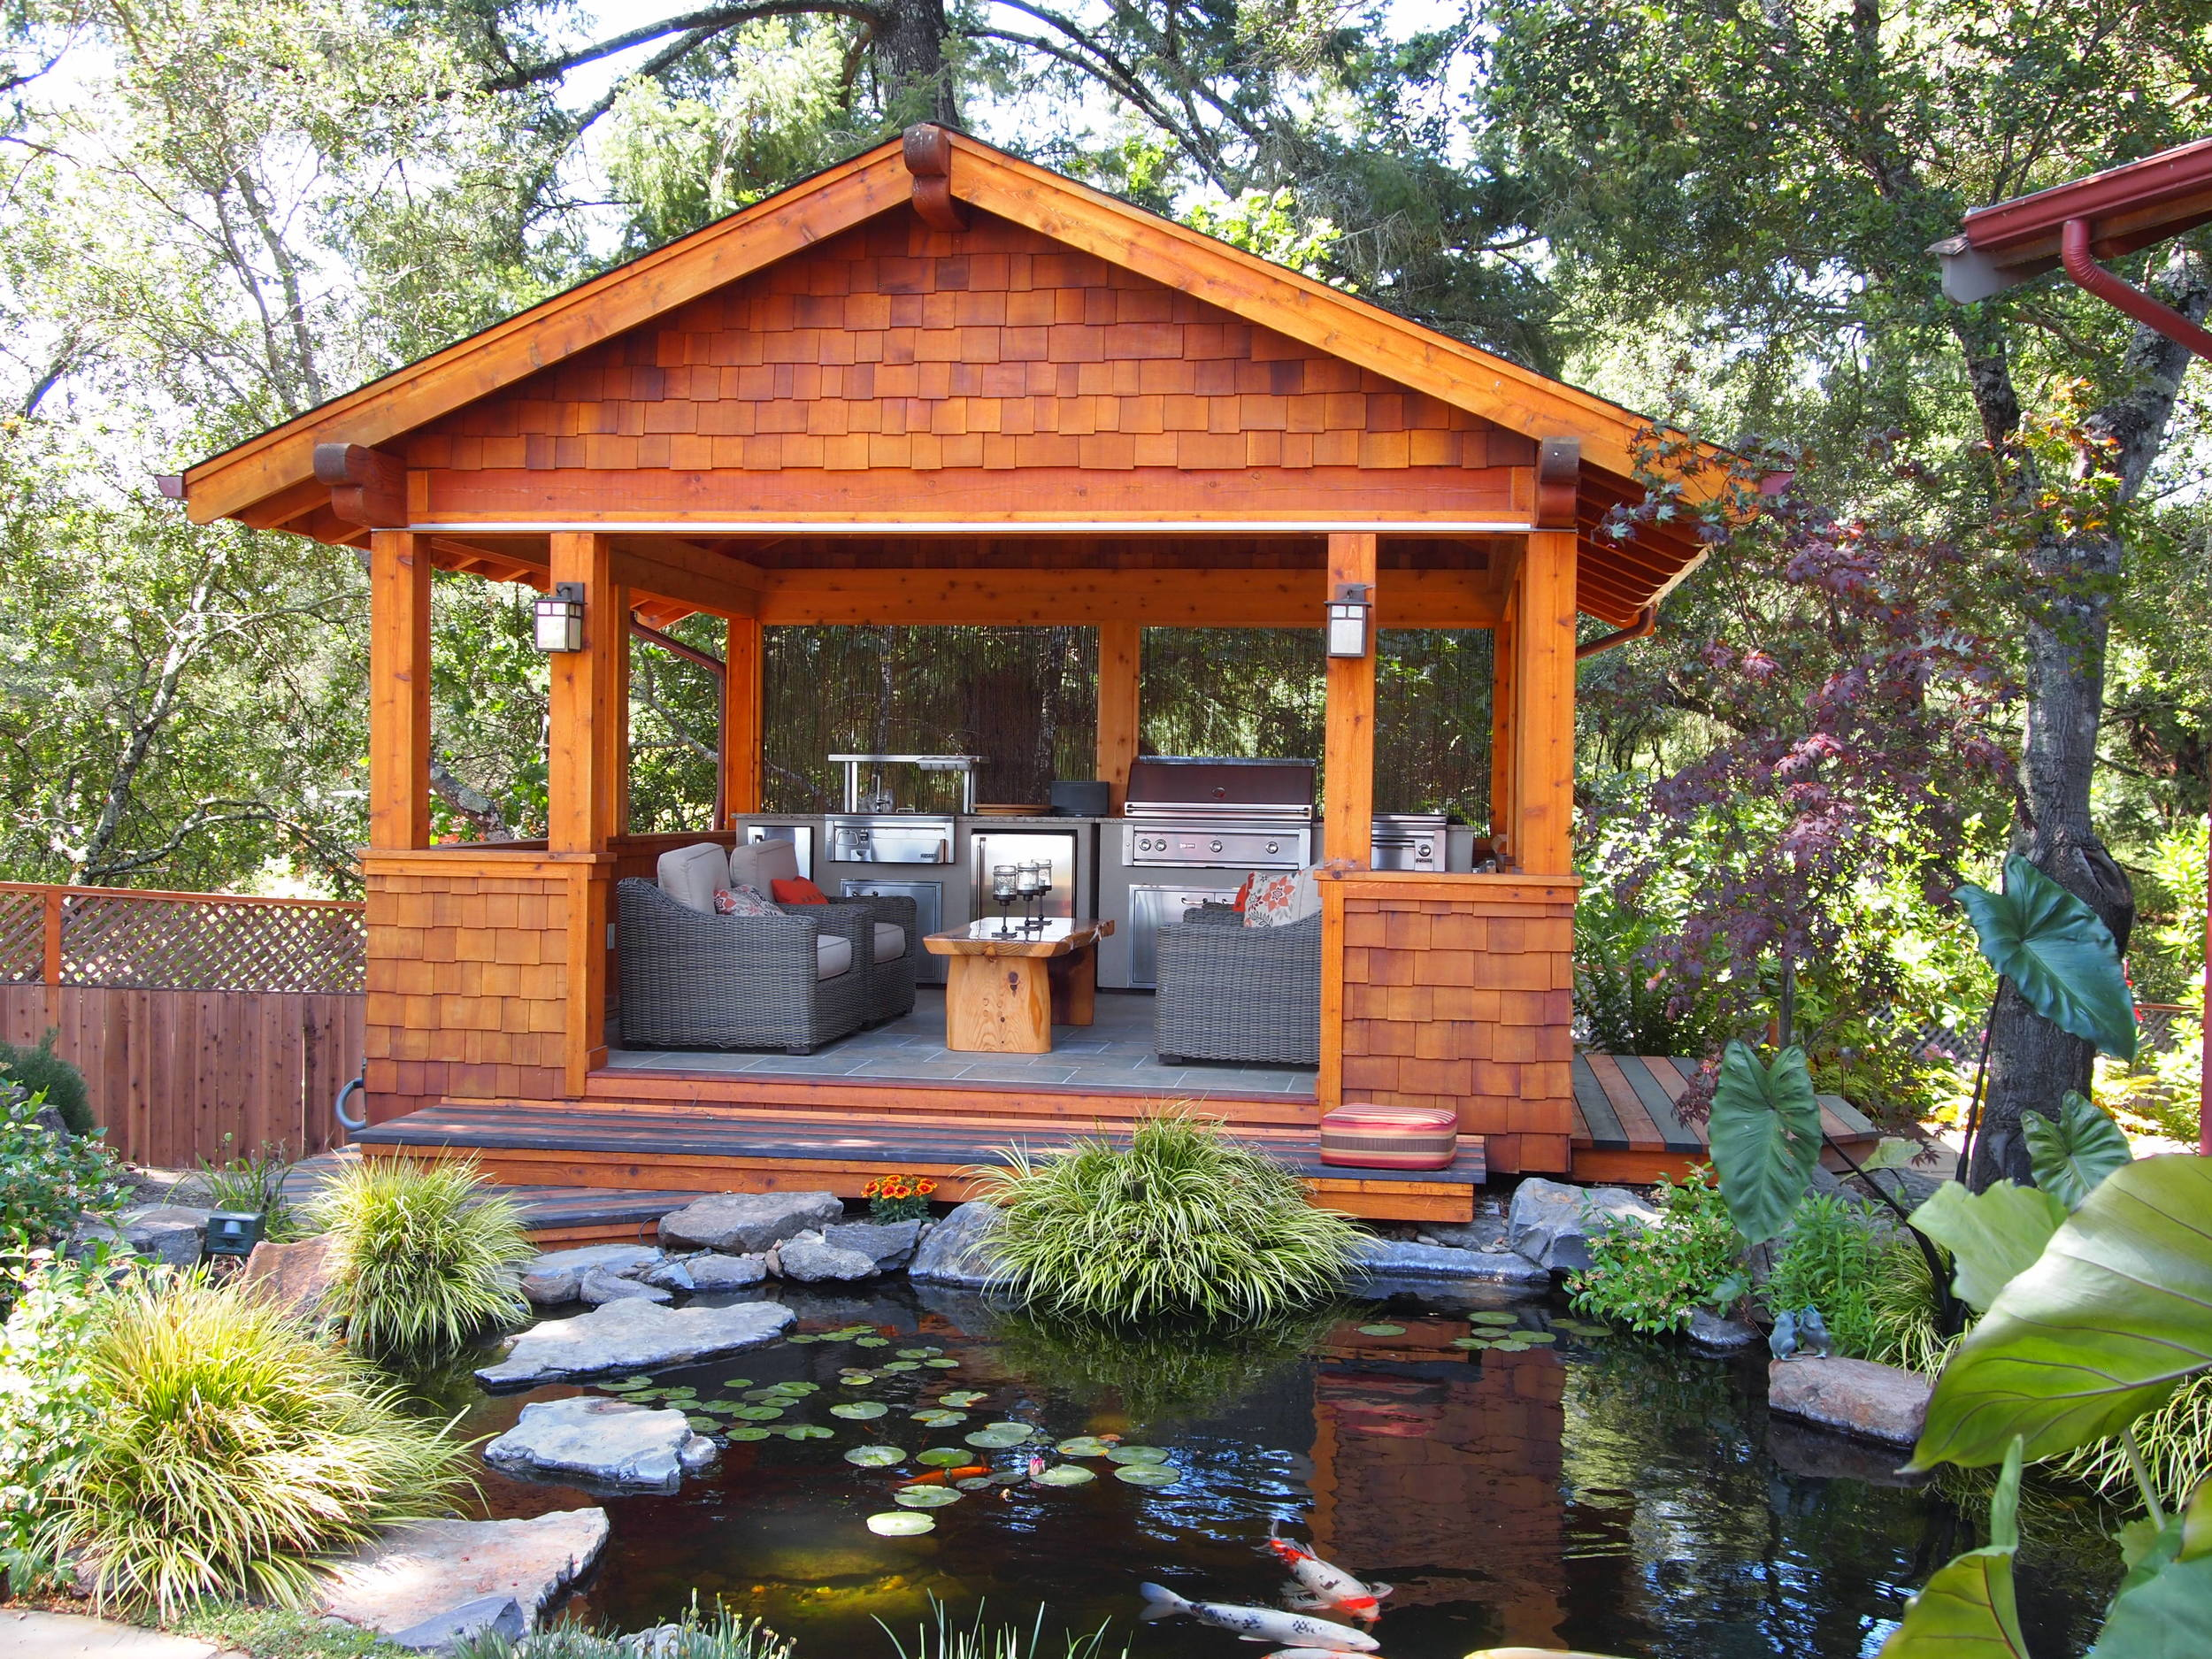 Outdoor kitchen combining Asian and Craftsman influences